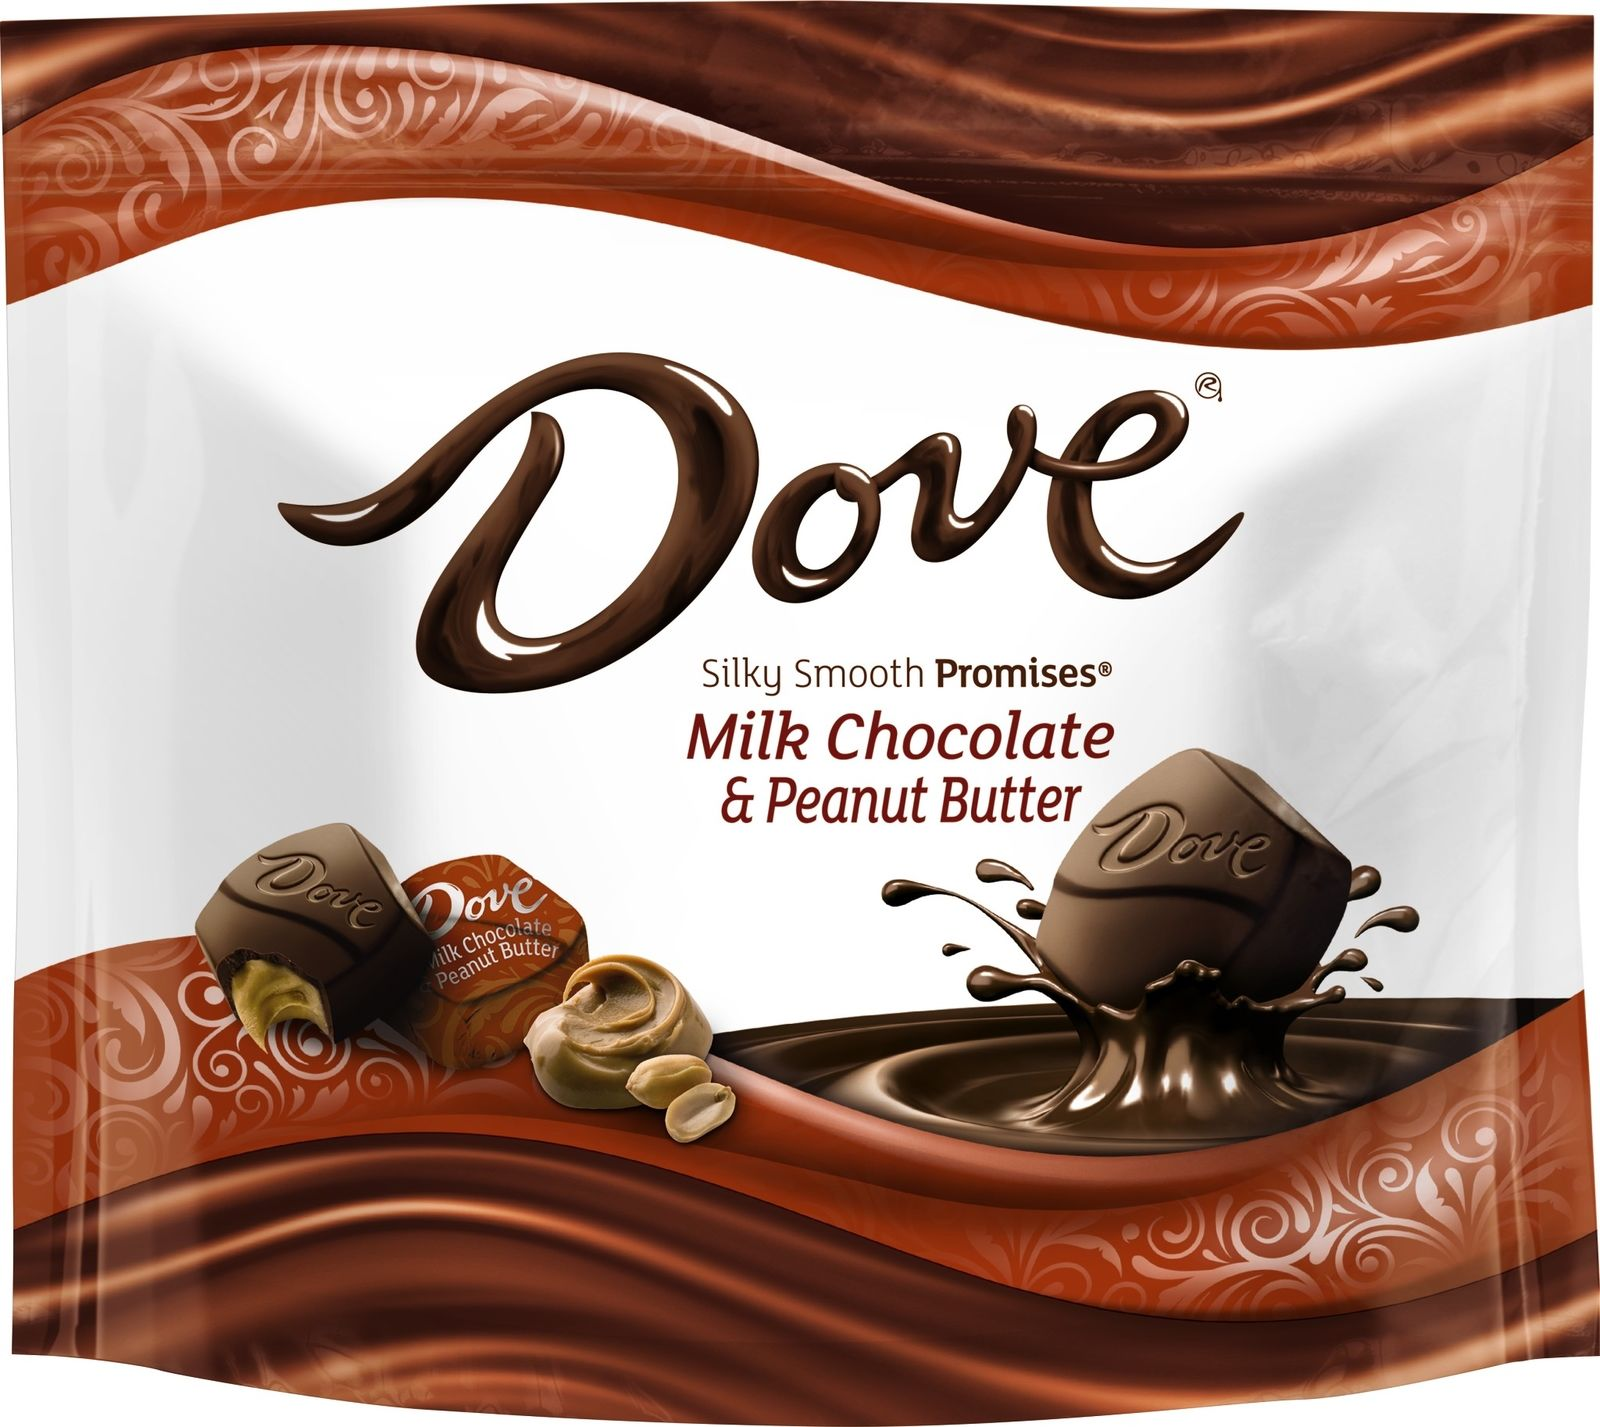 Dove Milk Chocolate & Peanut Butter Silky Smooth Promises, 7.61oz Bag